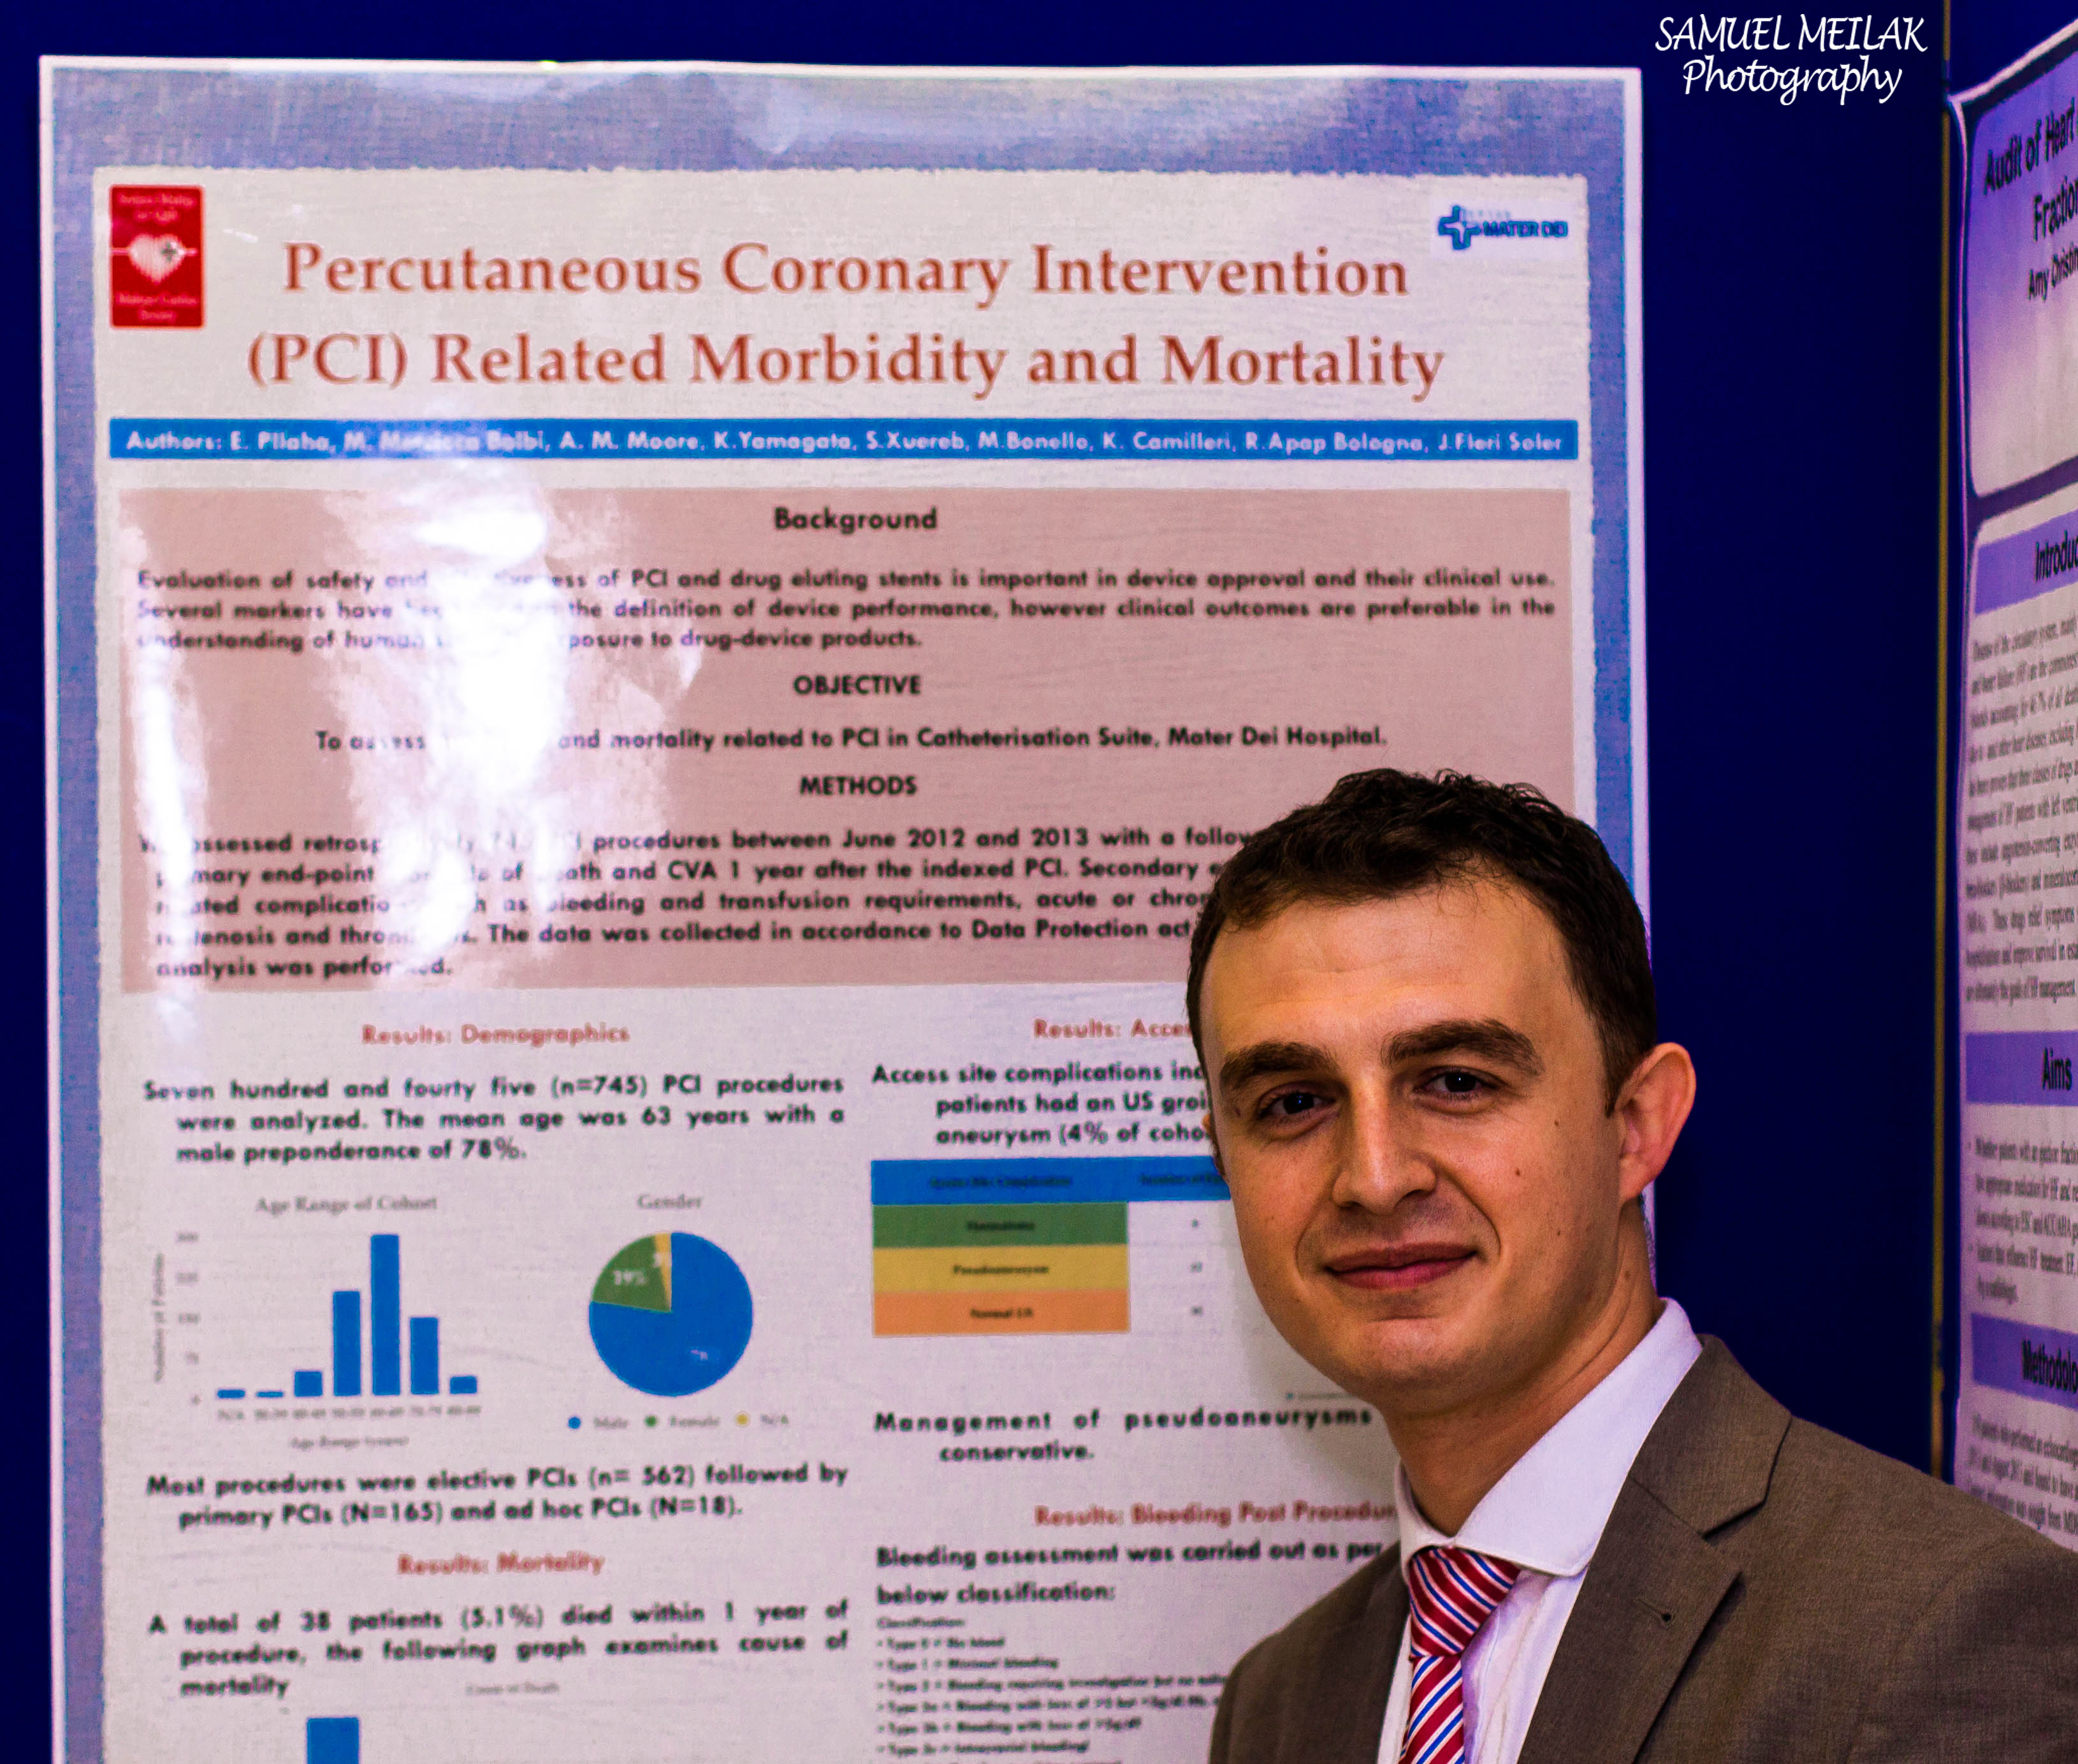 Cardiology Conference 2014 (64).jpg